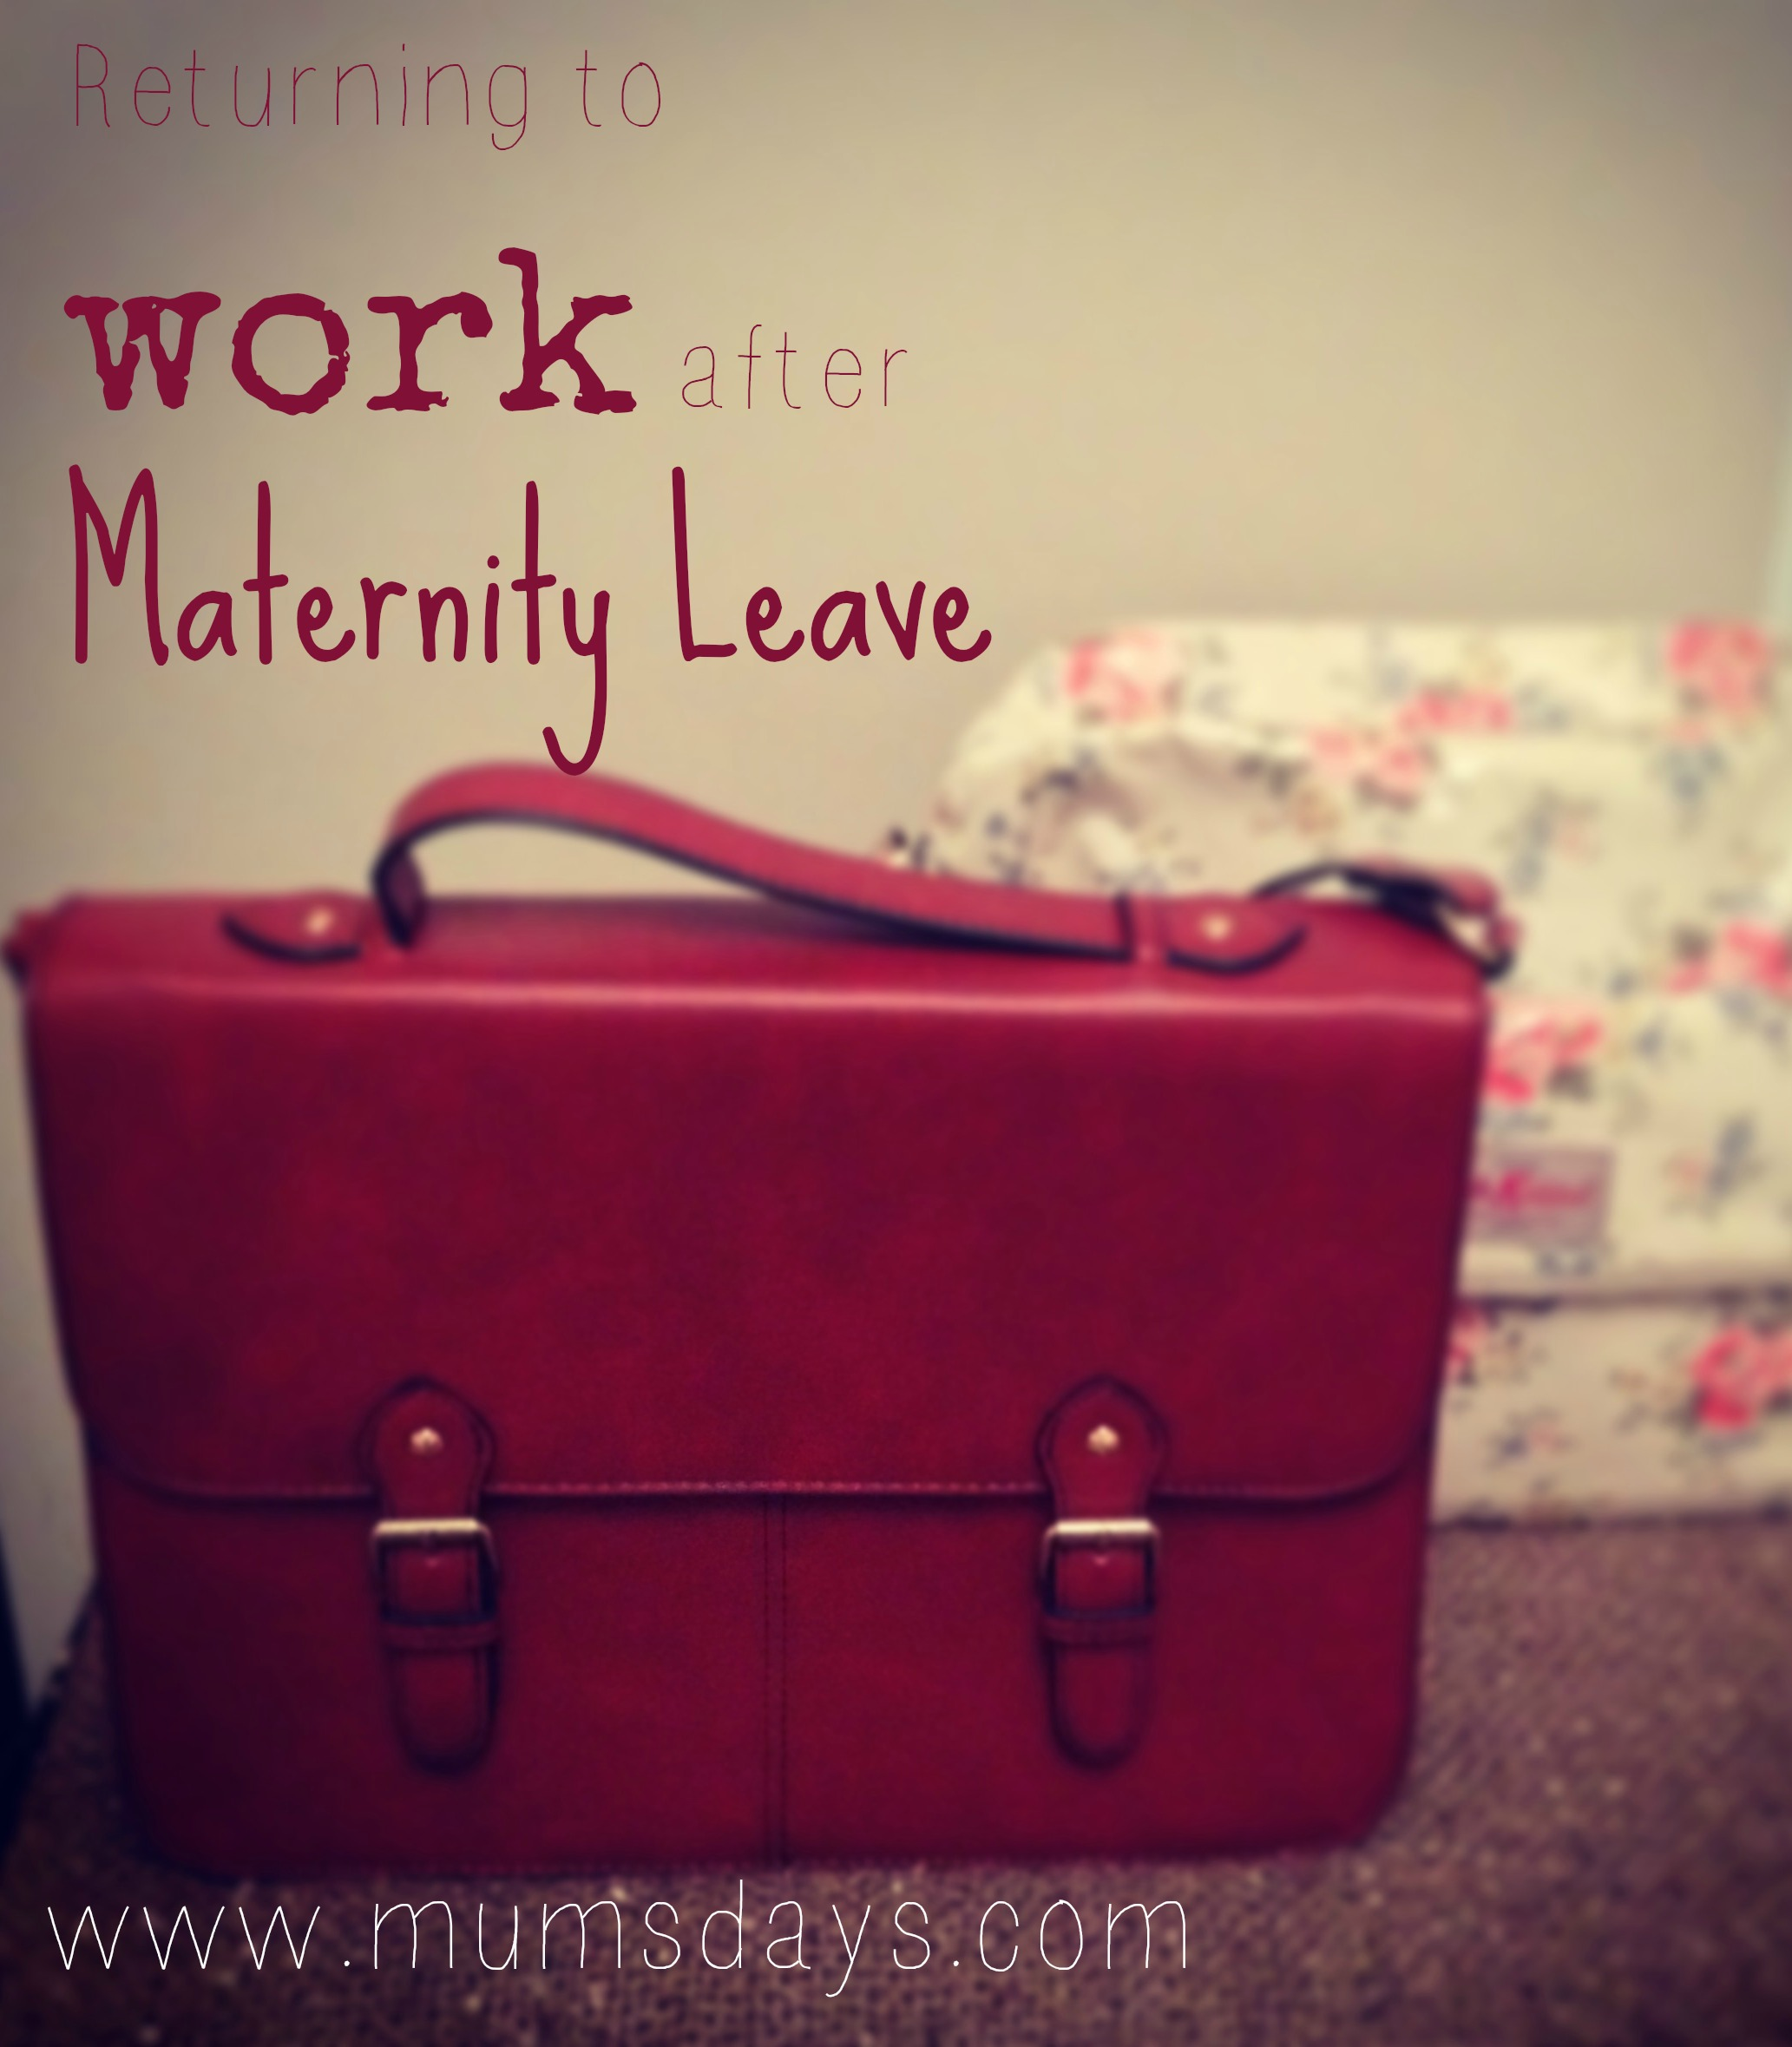 returning to work after maternity leave - Back To Work Returning To Work After Maternity Leave